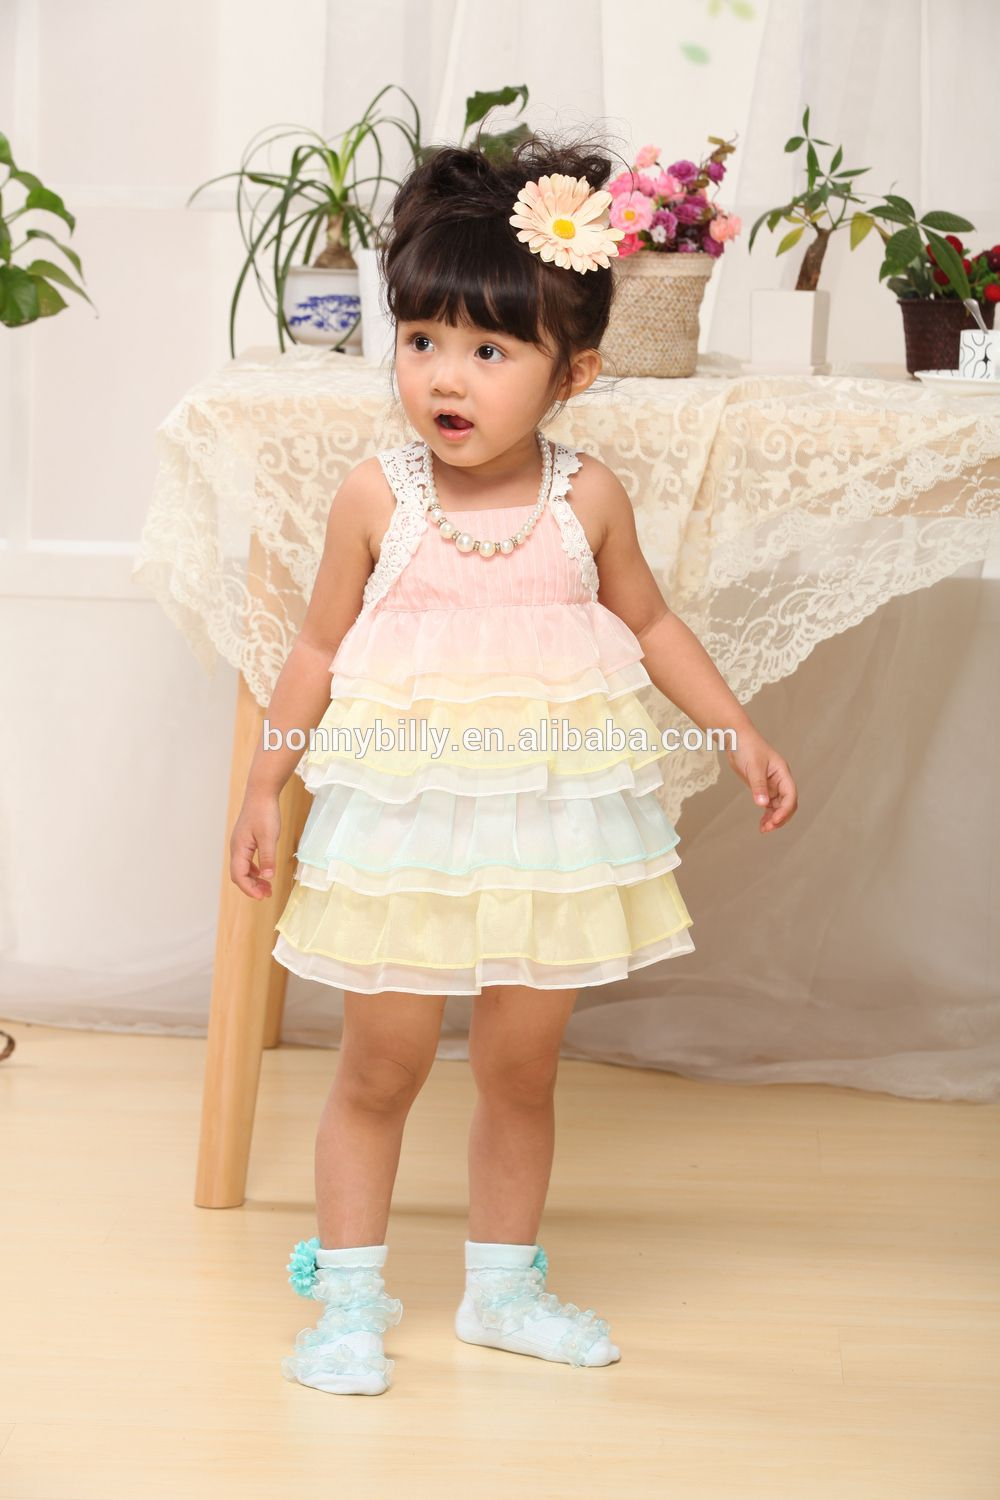 About product and suppliers: neidagrosk0dwju.ga offers 2, baby 1 year old party dress products. About 46% of these are girls' dresses, 18% are plus size dress & skirts, and 6% are flower girls' dresses.